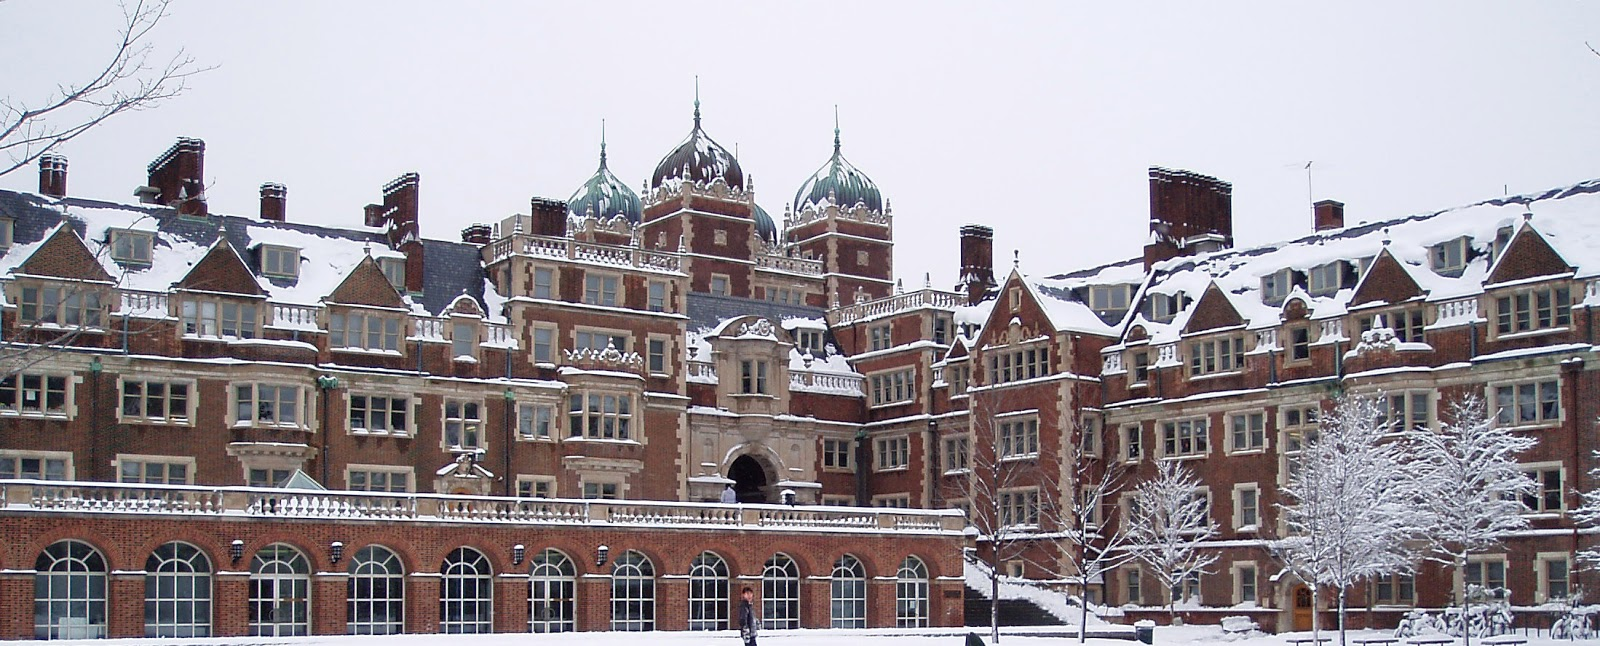 large university campus covered in snow